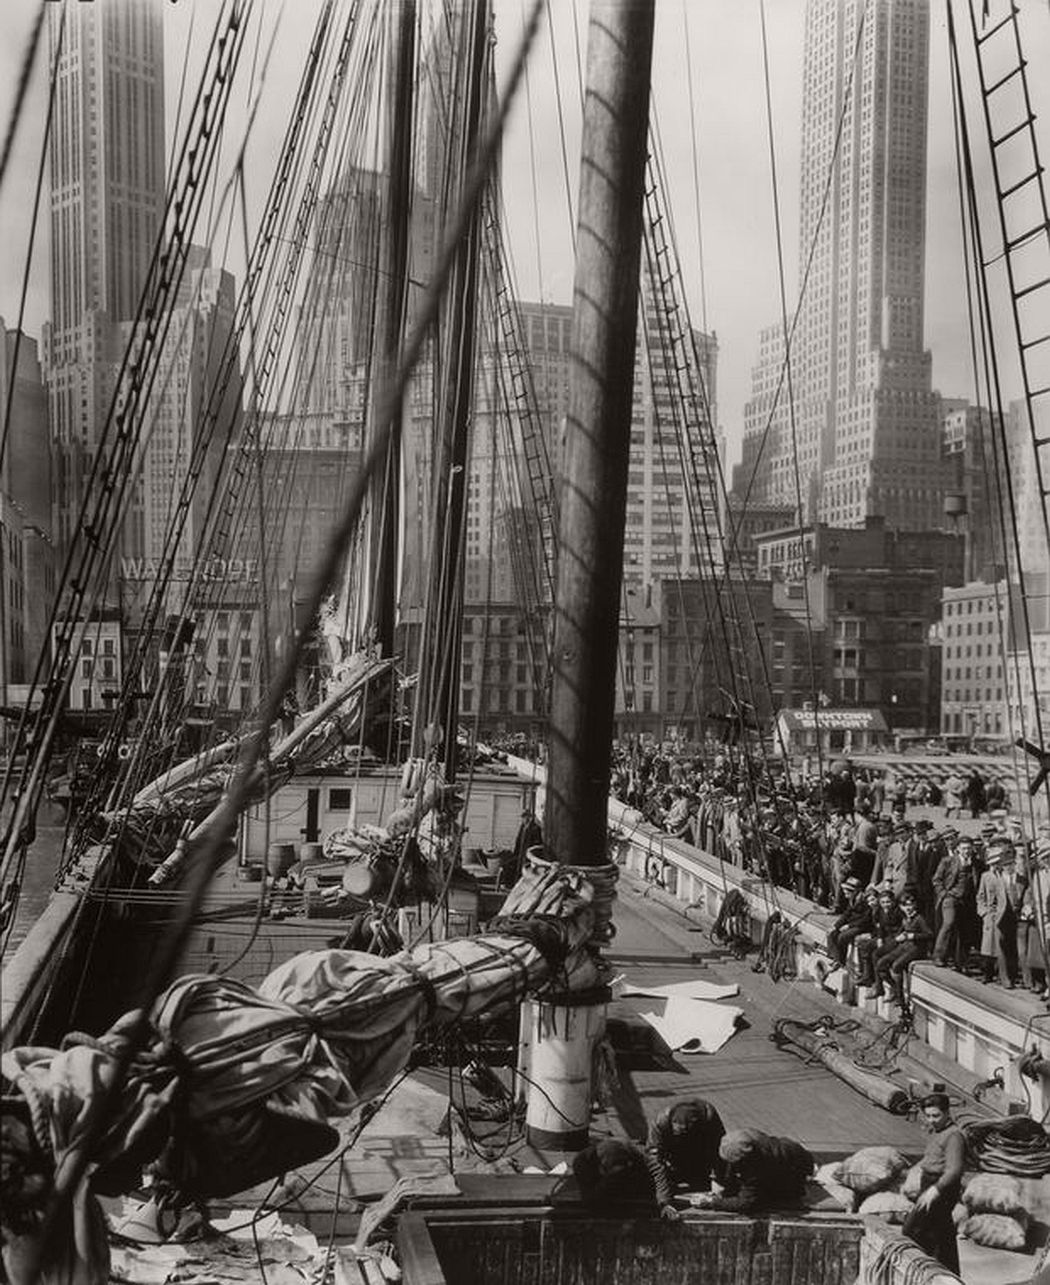 Pier 11 or 12, East River, Manhattan, April 09, 1936